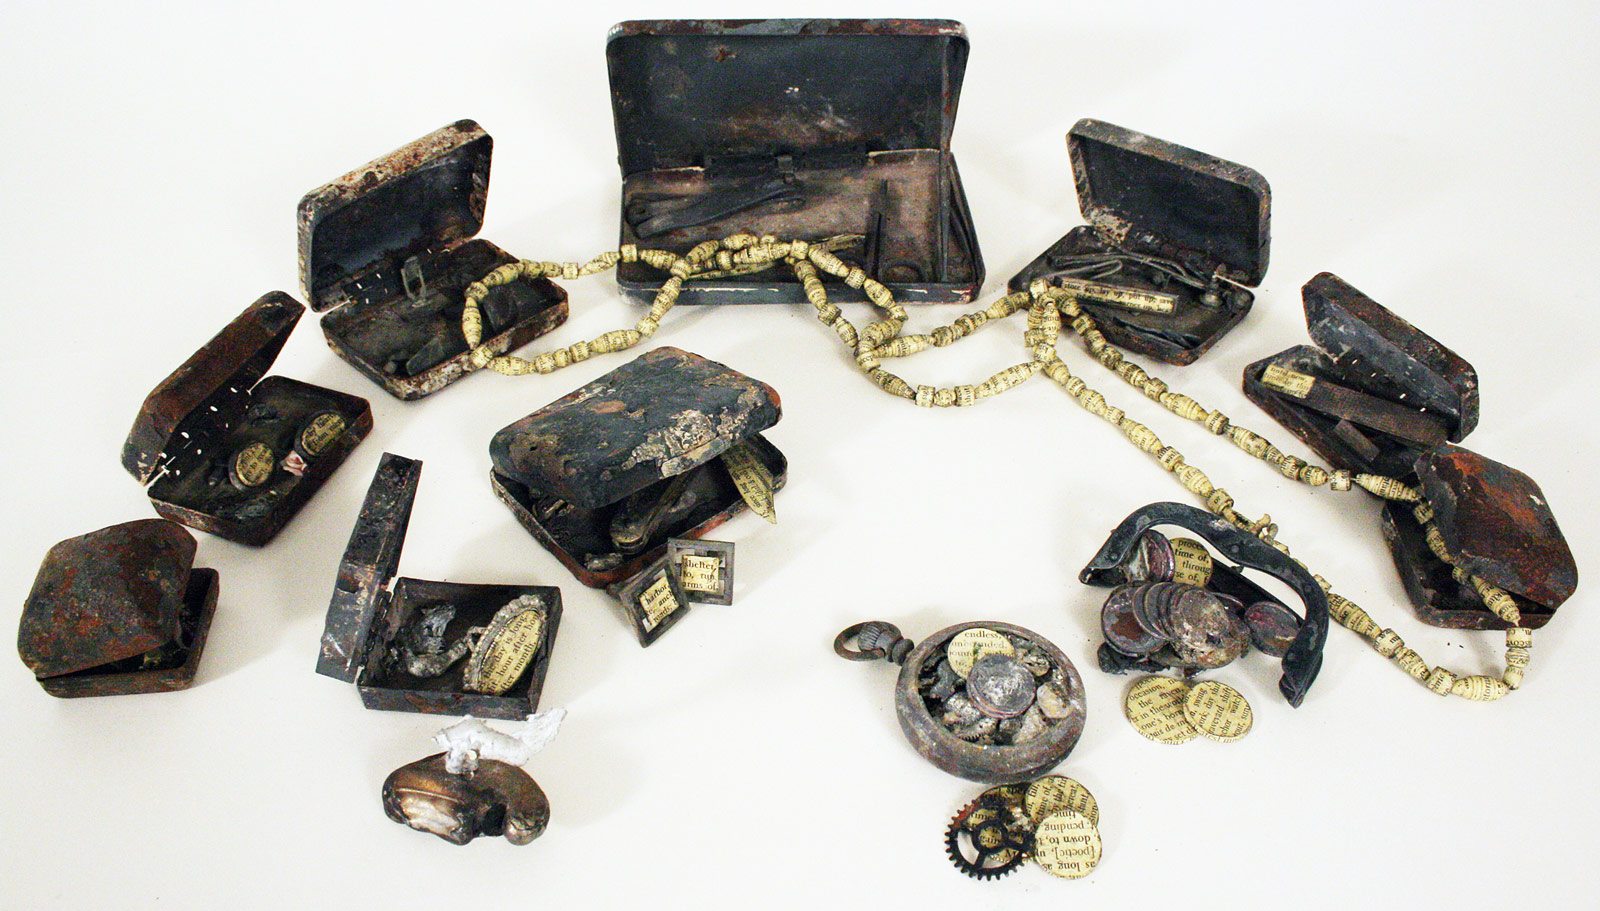 The siblings discover the remnants of their parents' romance: Nine jewel boxes, watch and purse